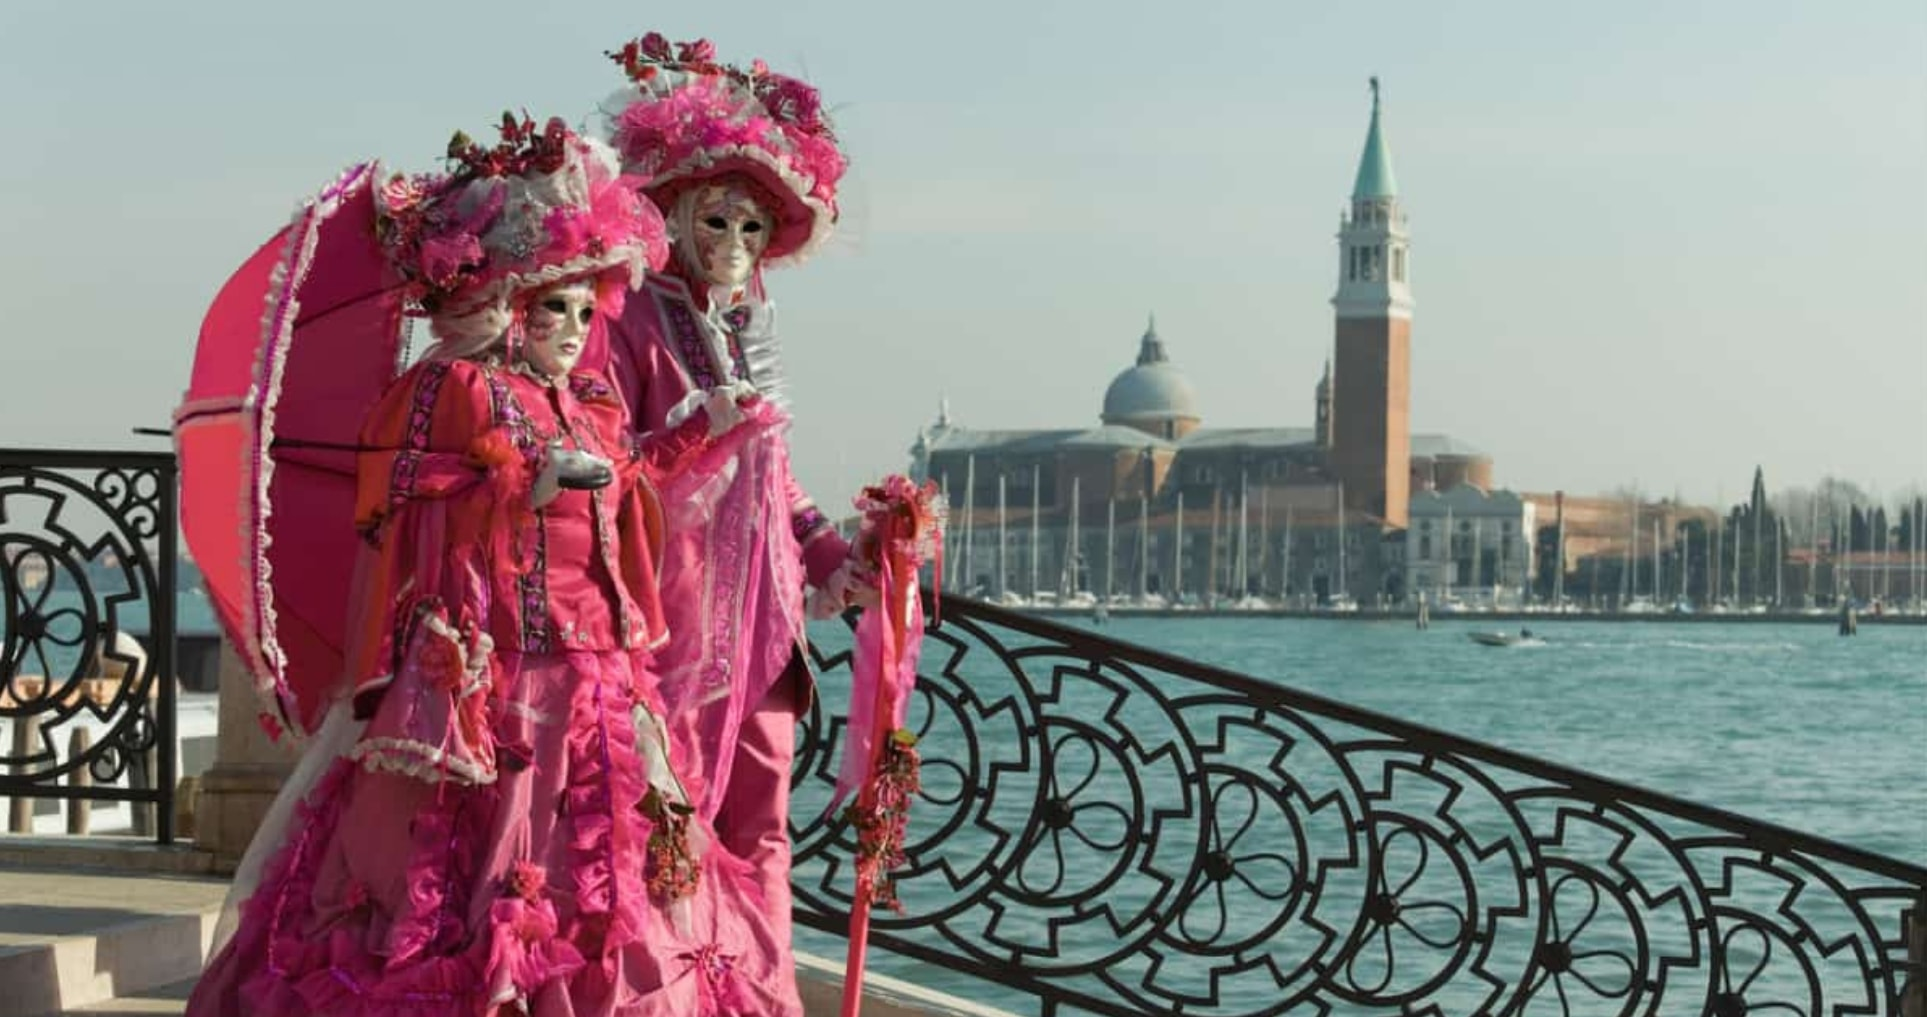 The Carnival of Venice 2019